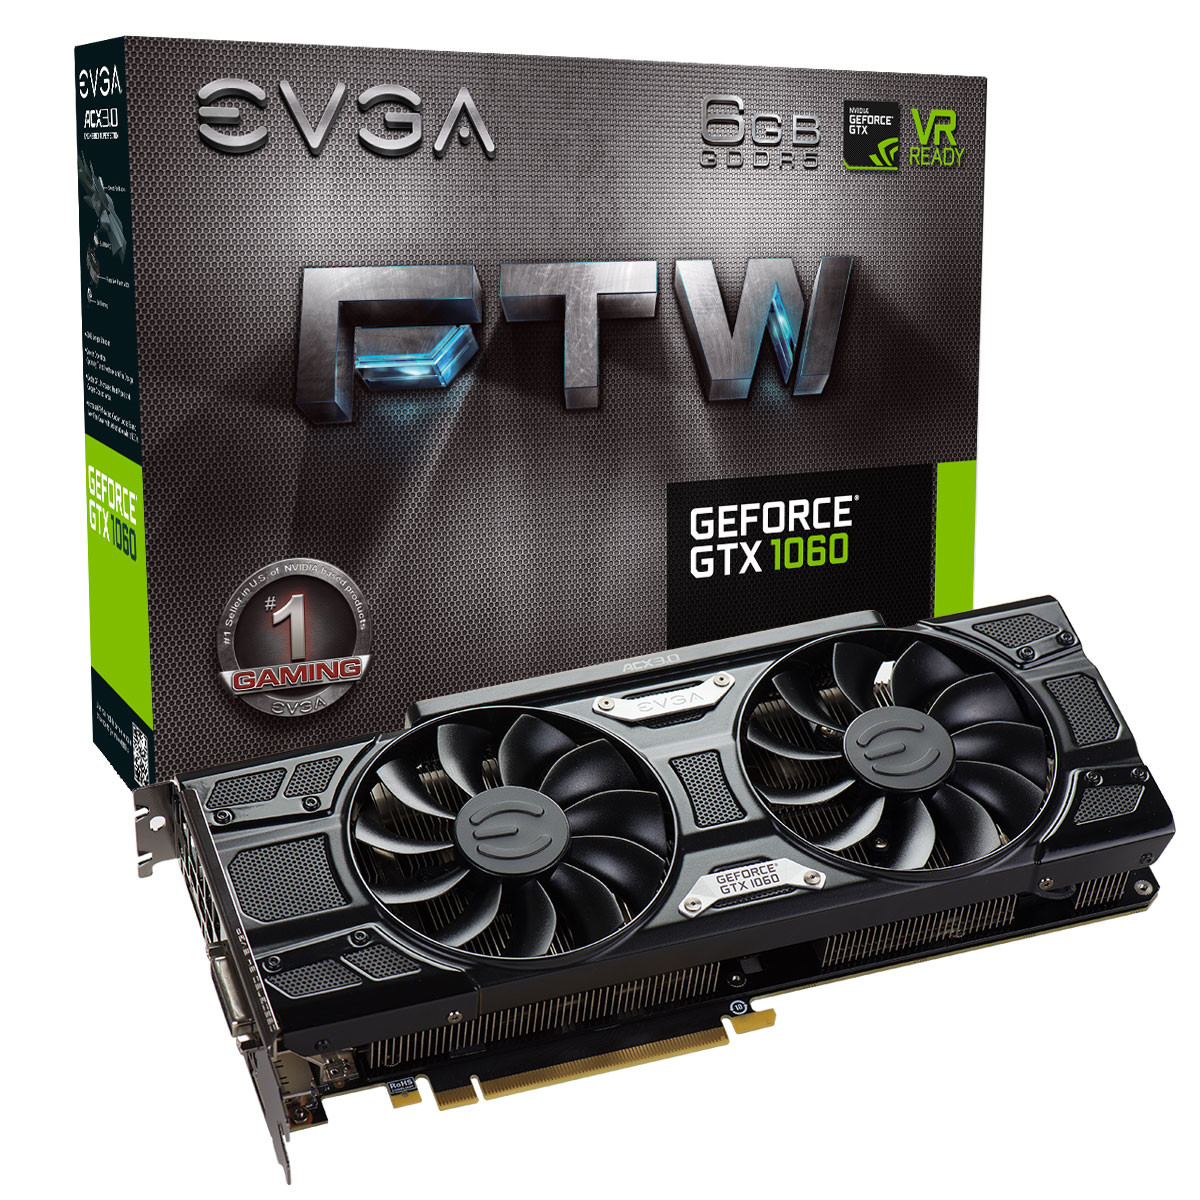 EVGA GTX 1070/1080 Overheating Issues Update - New BIOS